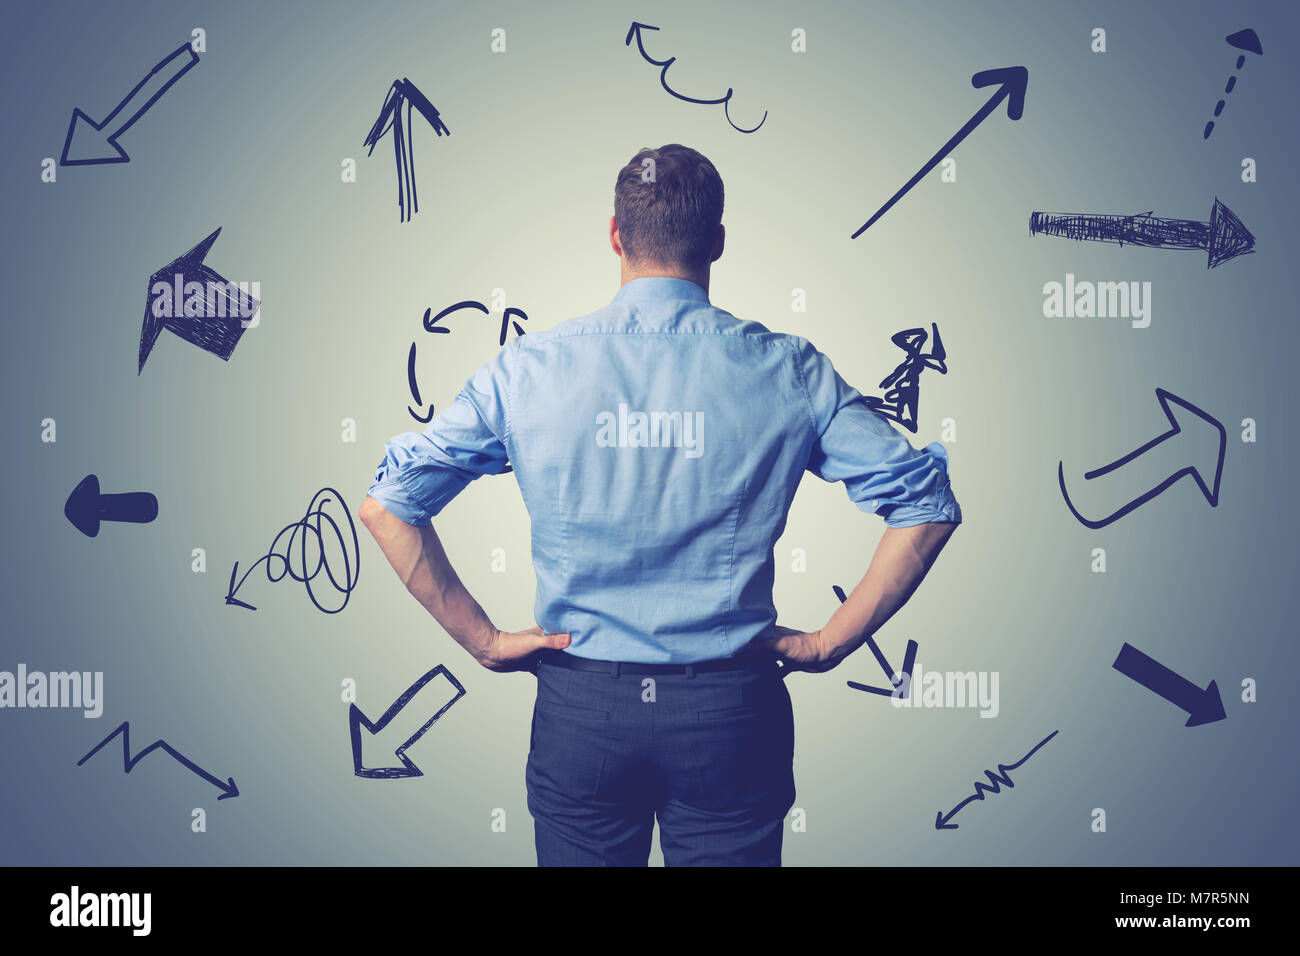 confused businessman with direction arrows. choosing the right way decision concept - Stock Image